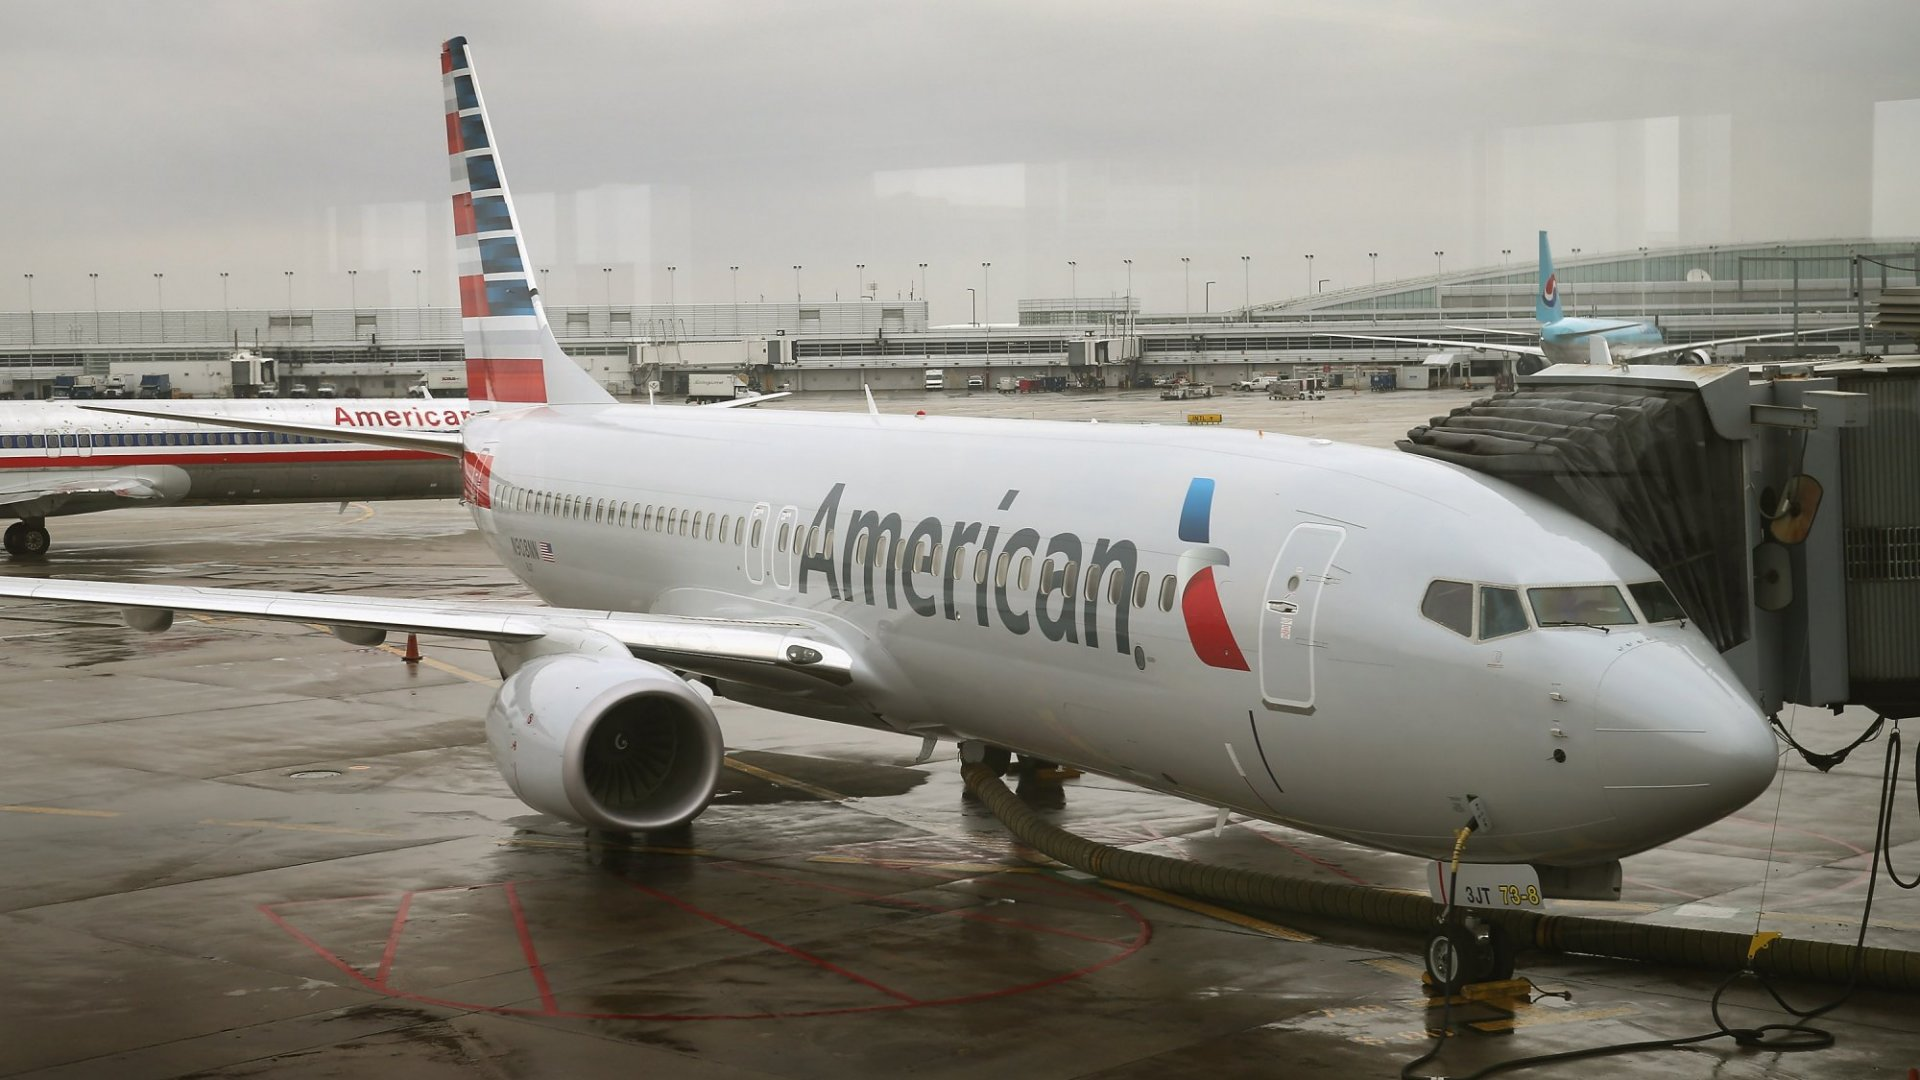 American Airlines, United, and Delta Make Billions Selling This 1 Simple Thing (and We Haven't Really Noticed)